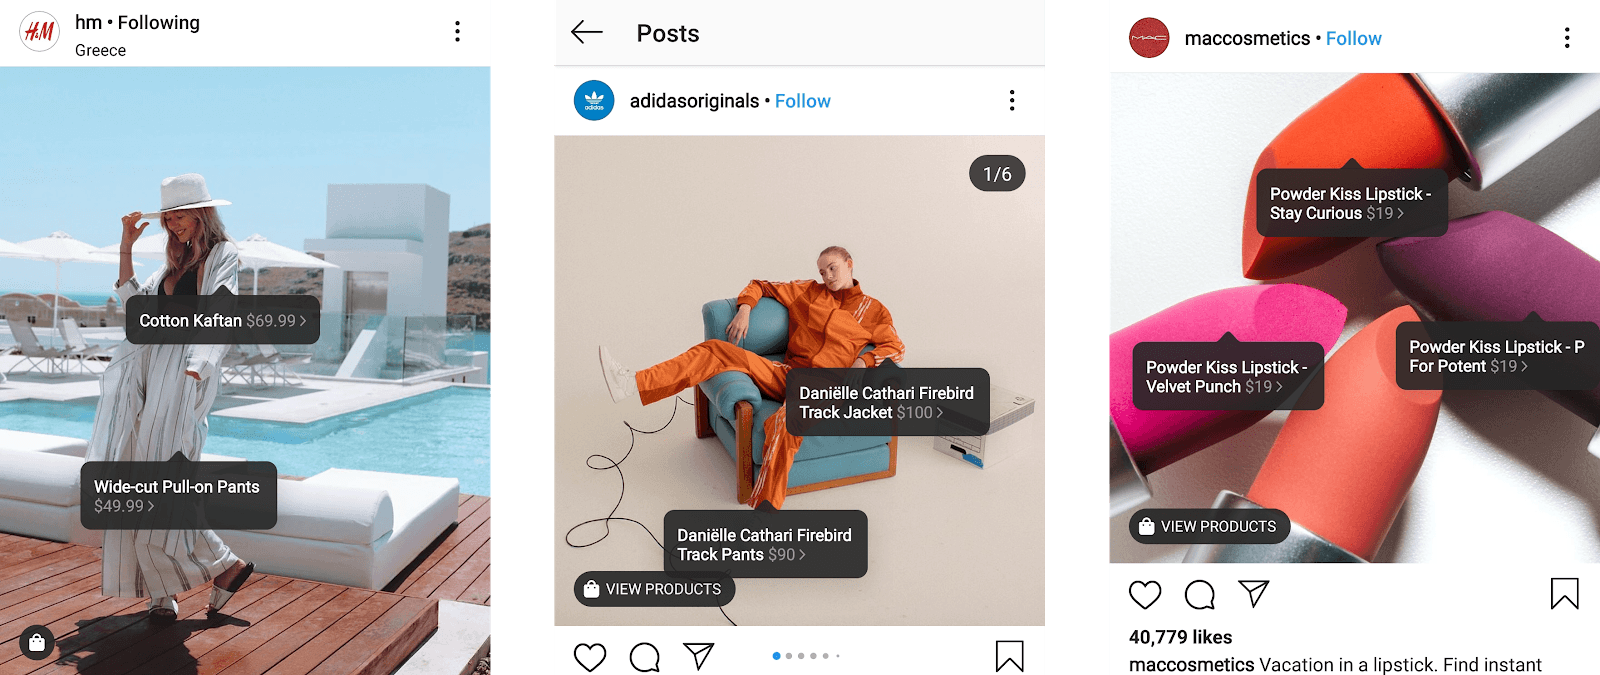 Instagram Checkout in A complete guidebook on online eCommerce marketplaces